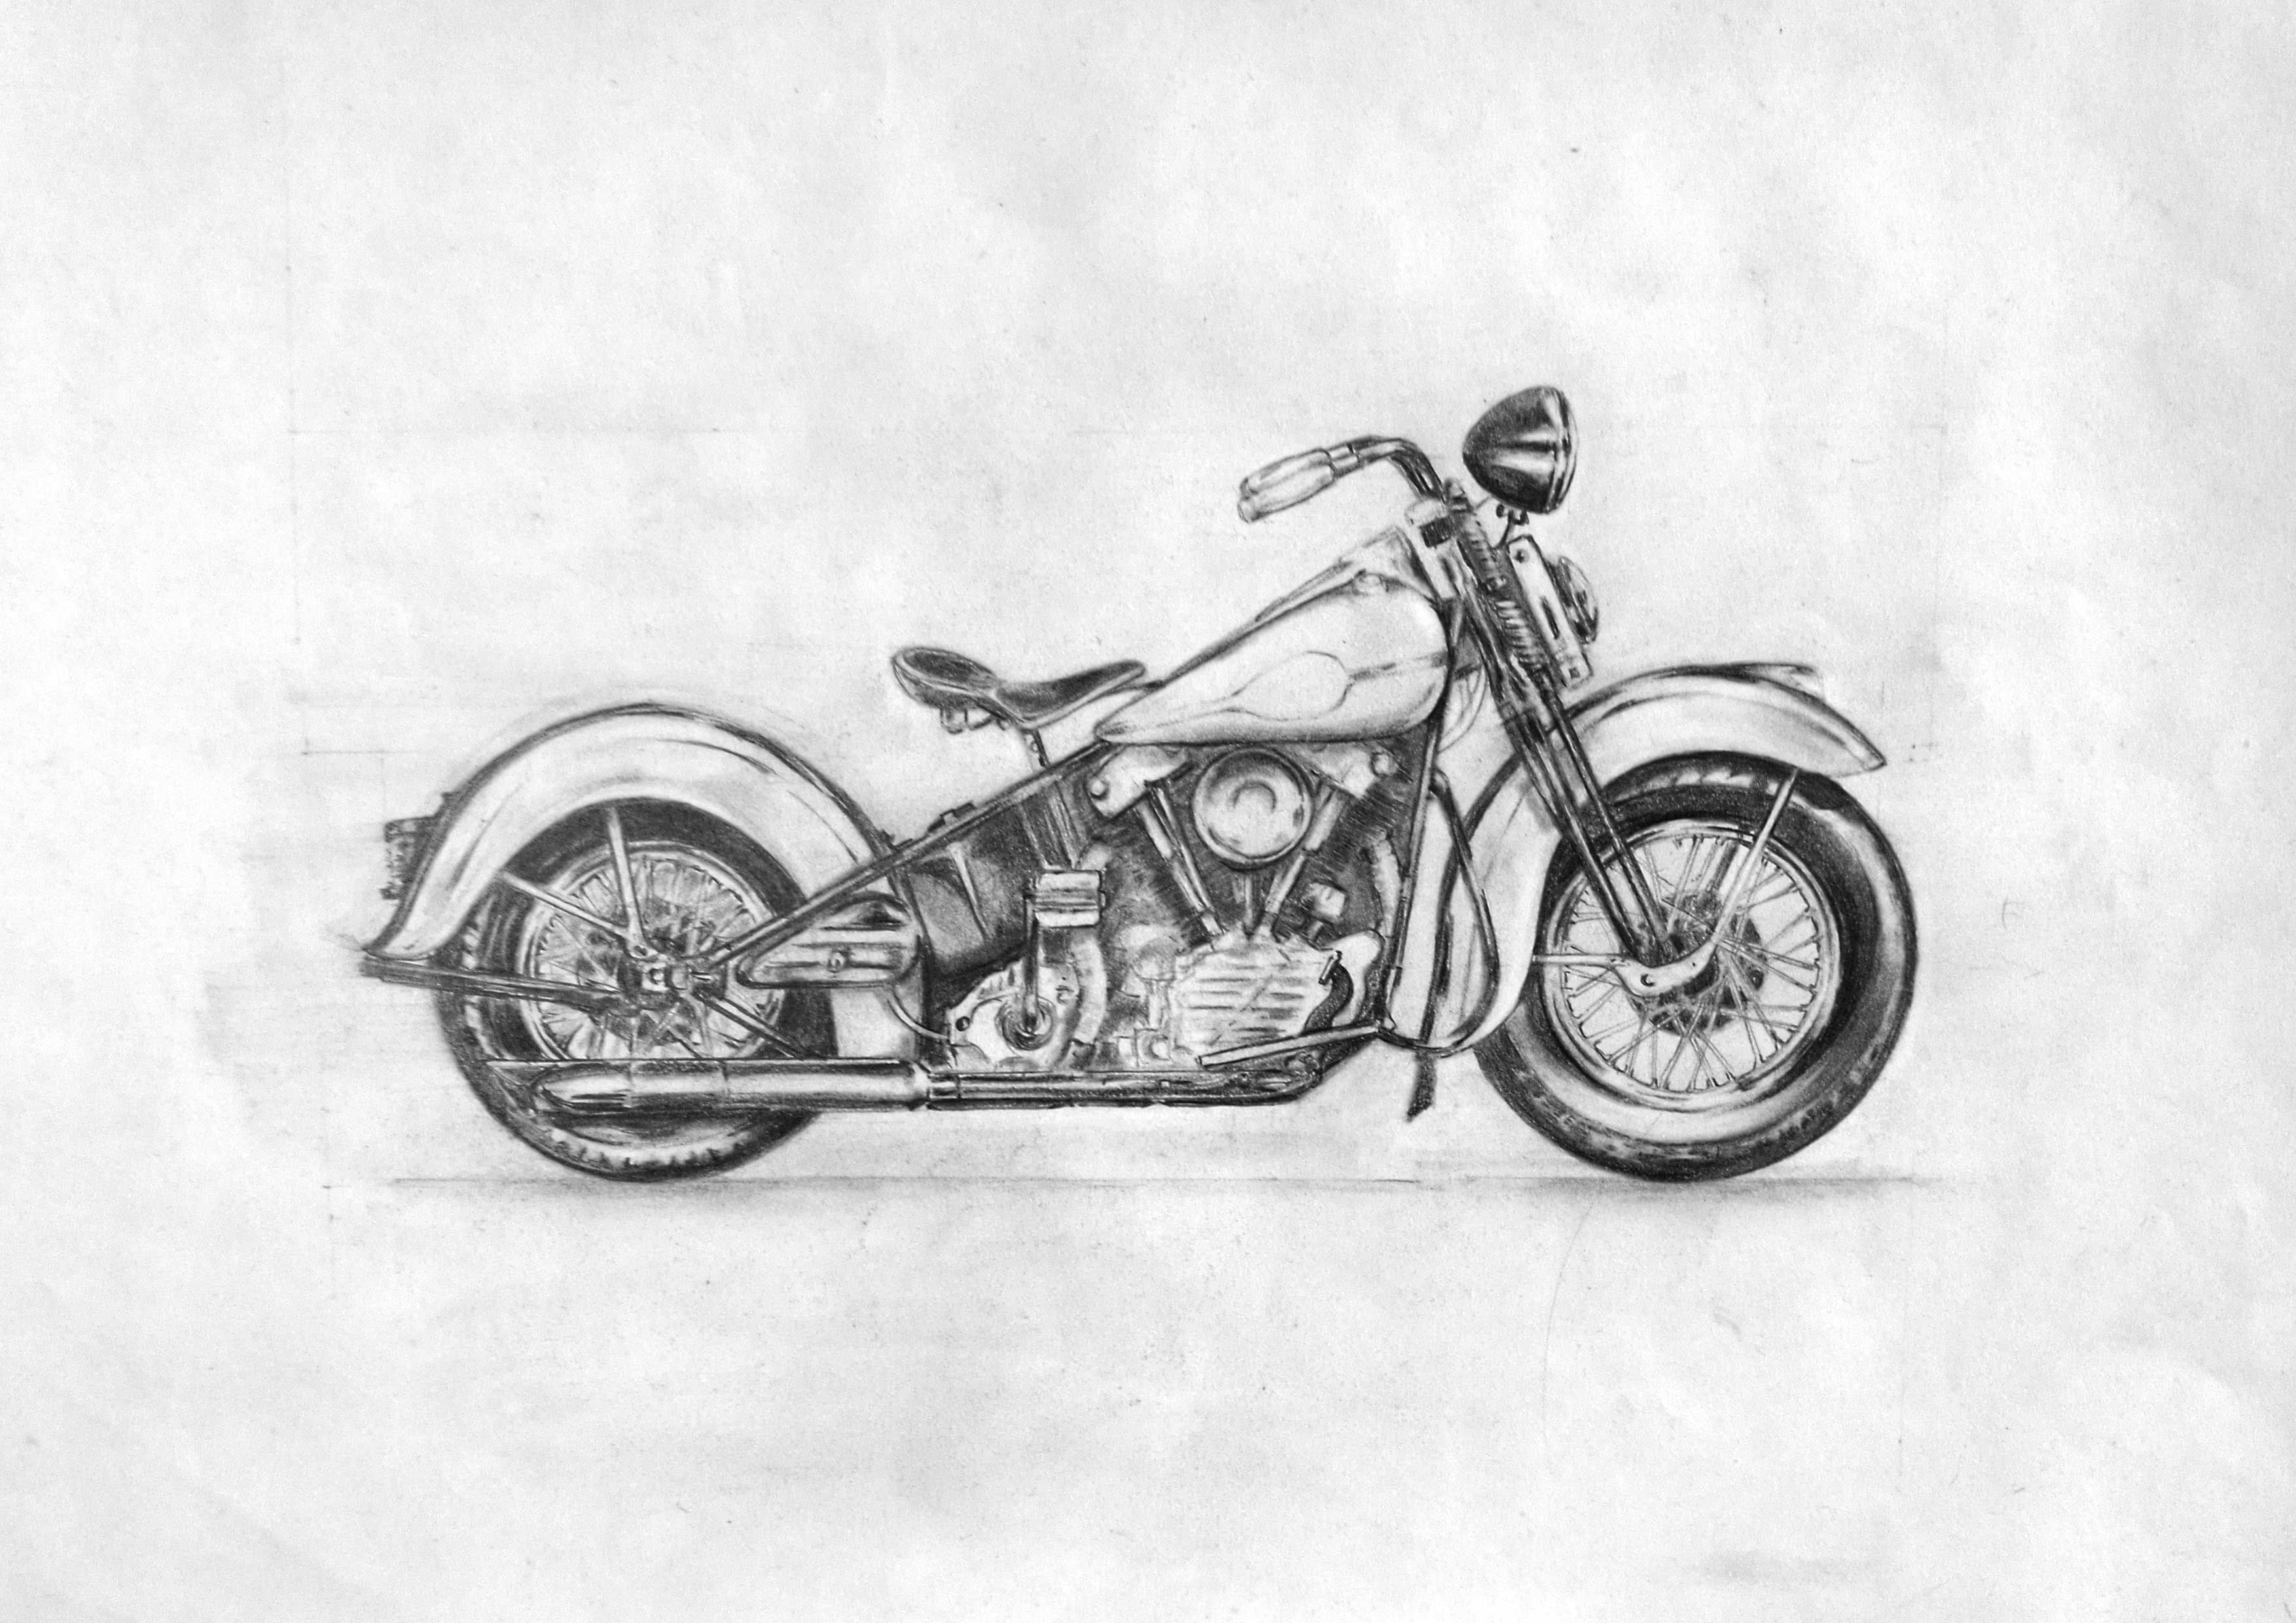 1947 harley davidson knucklehead various pencils on a3 paper